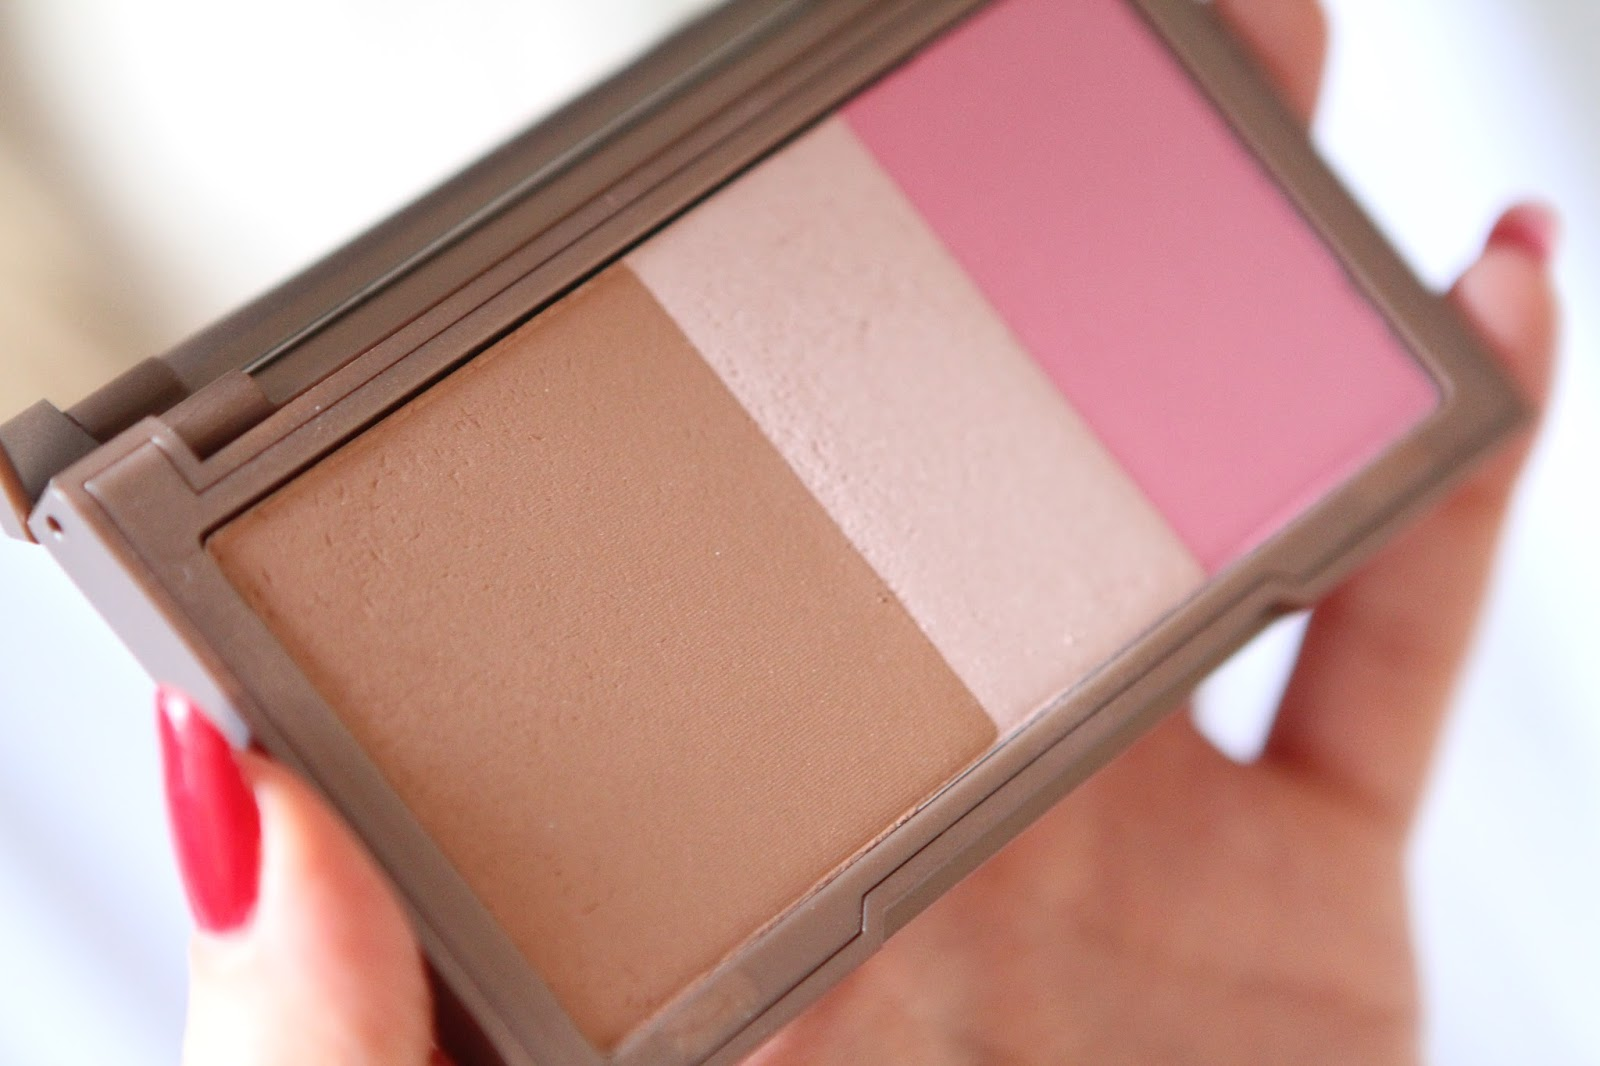 Urban Decay Naked Flush blush palette